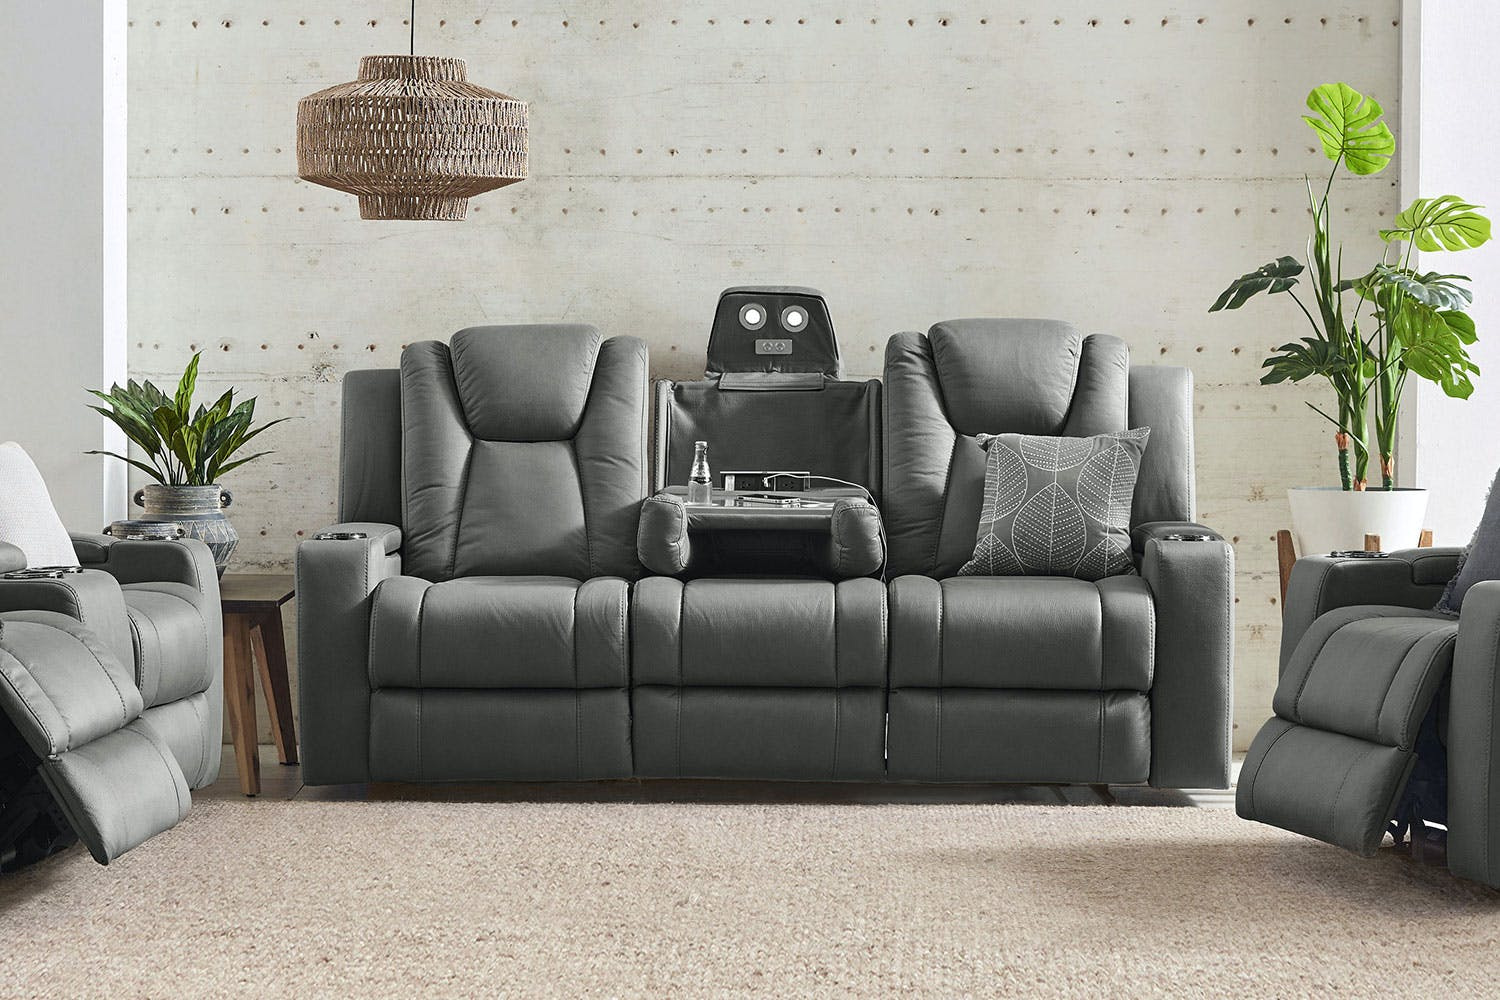 Remarkable White Haven Fabric 3 Seater Electric Recliner Sofa Dailytribune Chair Design For Home Dailytribuneorg